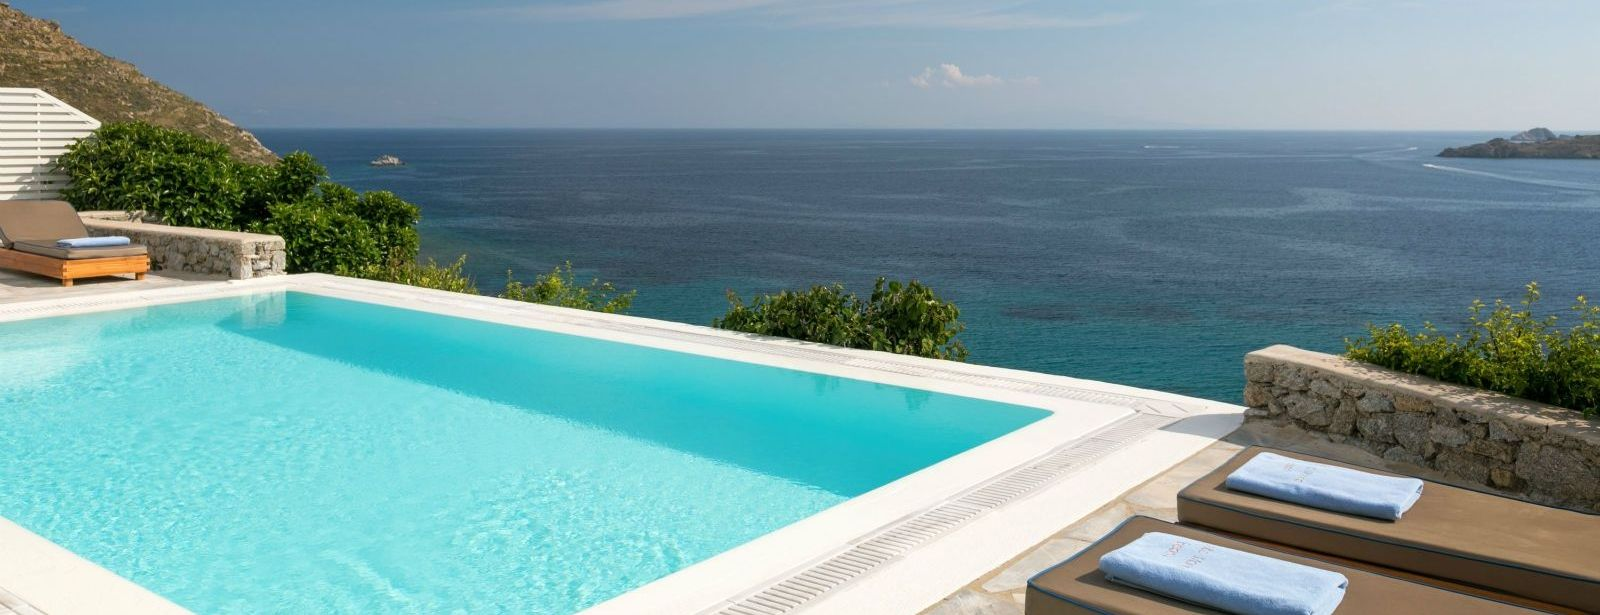 Villa Ruby Pool Sea view Santa Marina Resort Mykonos Luxury Hotel